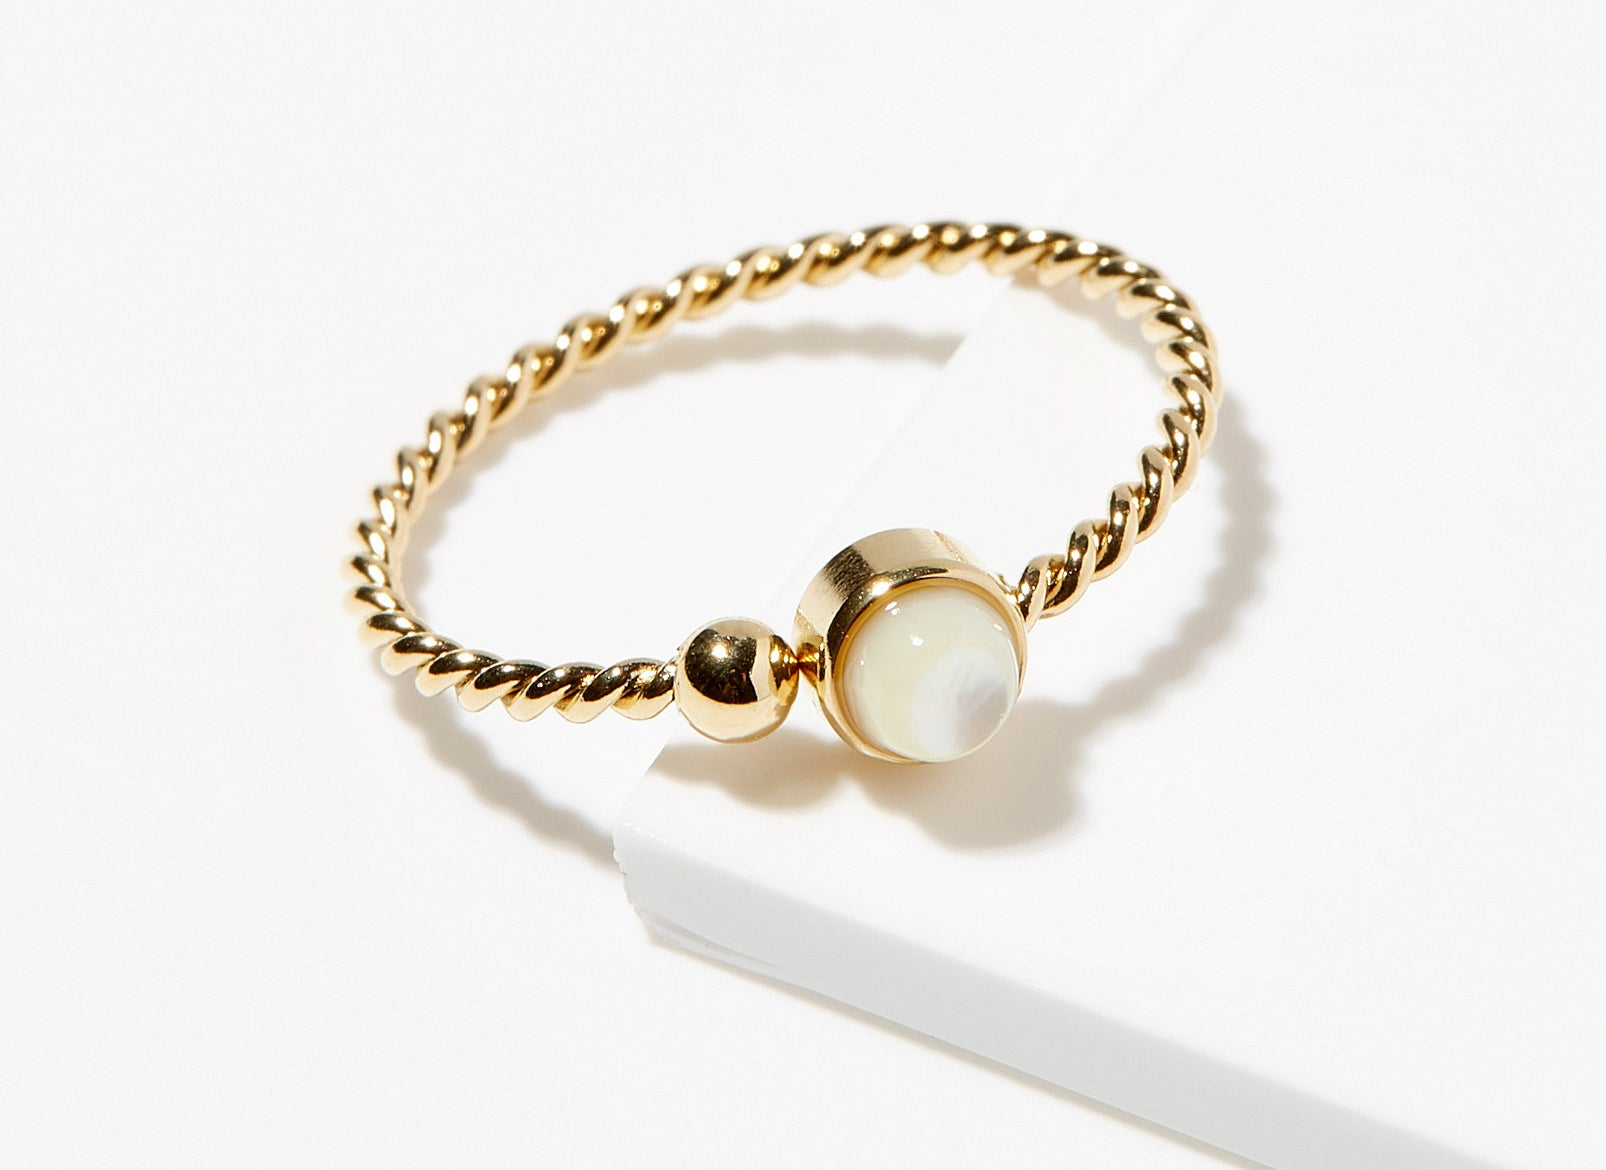 A small gold ring with a pearl jewel at the center